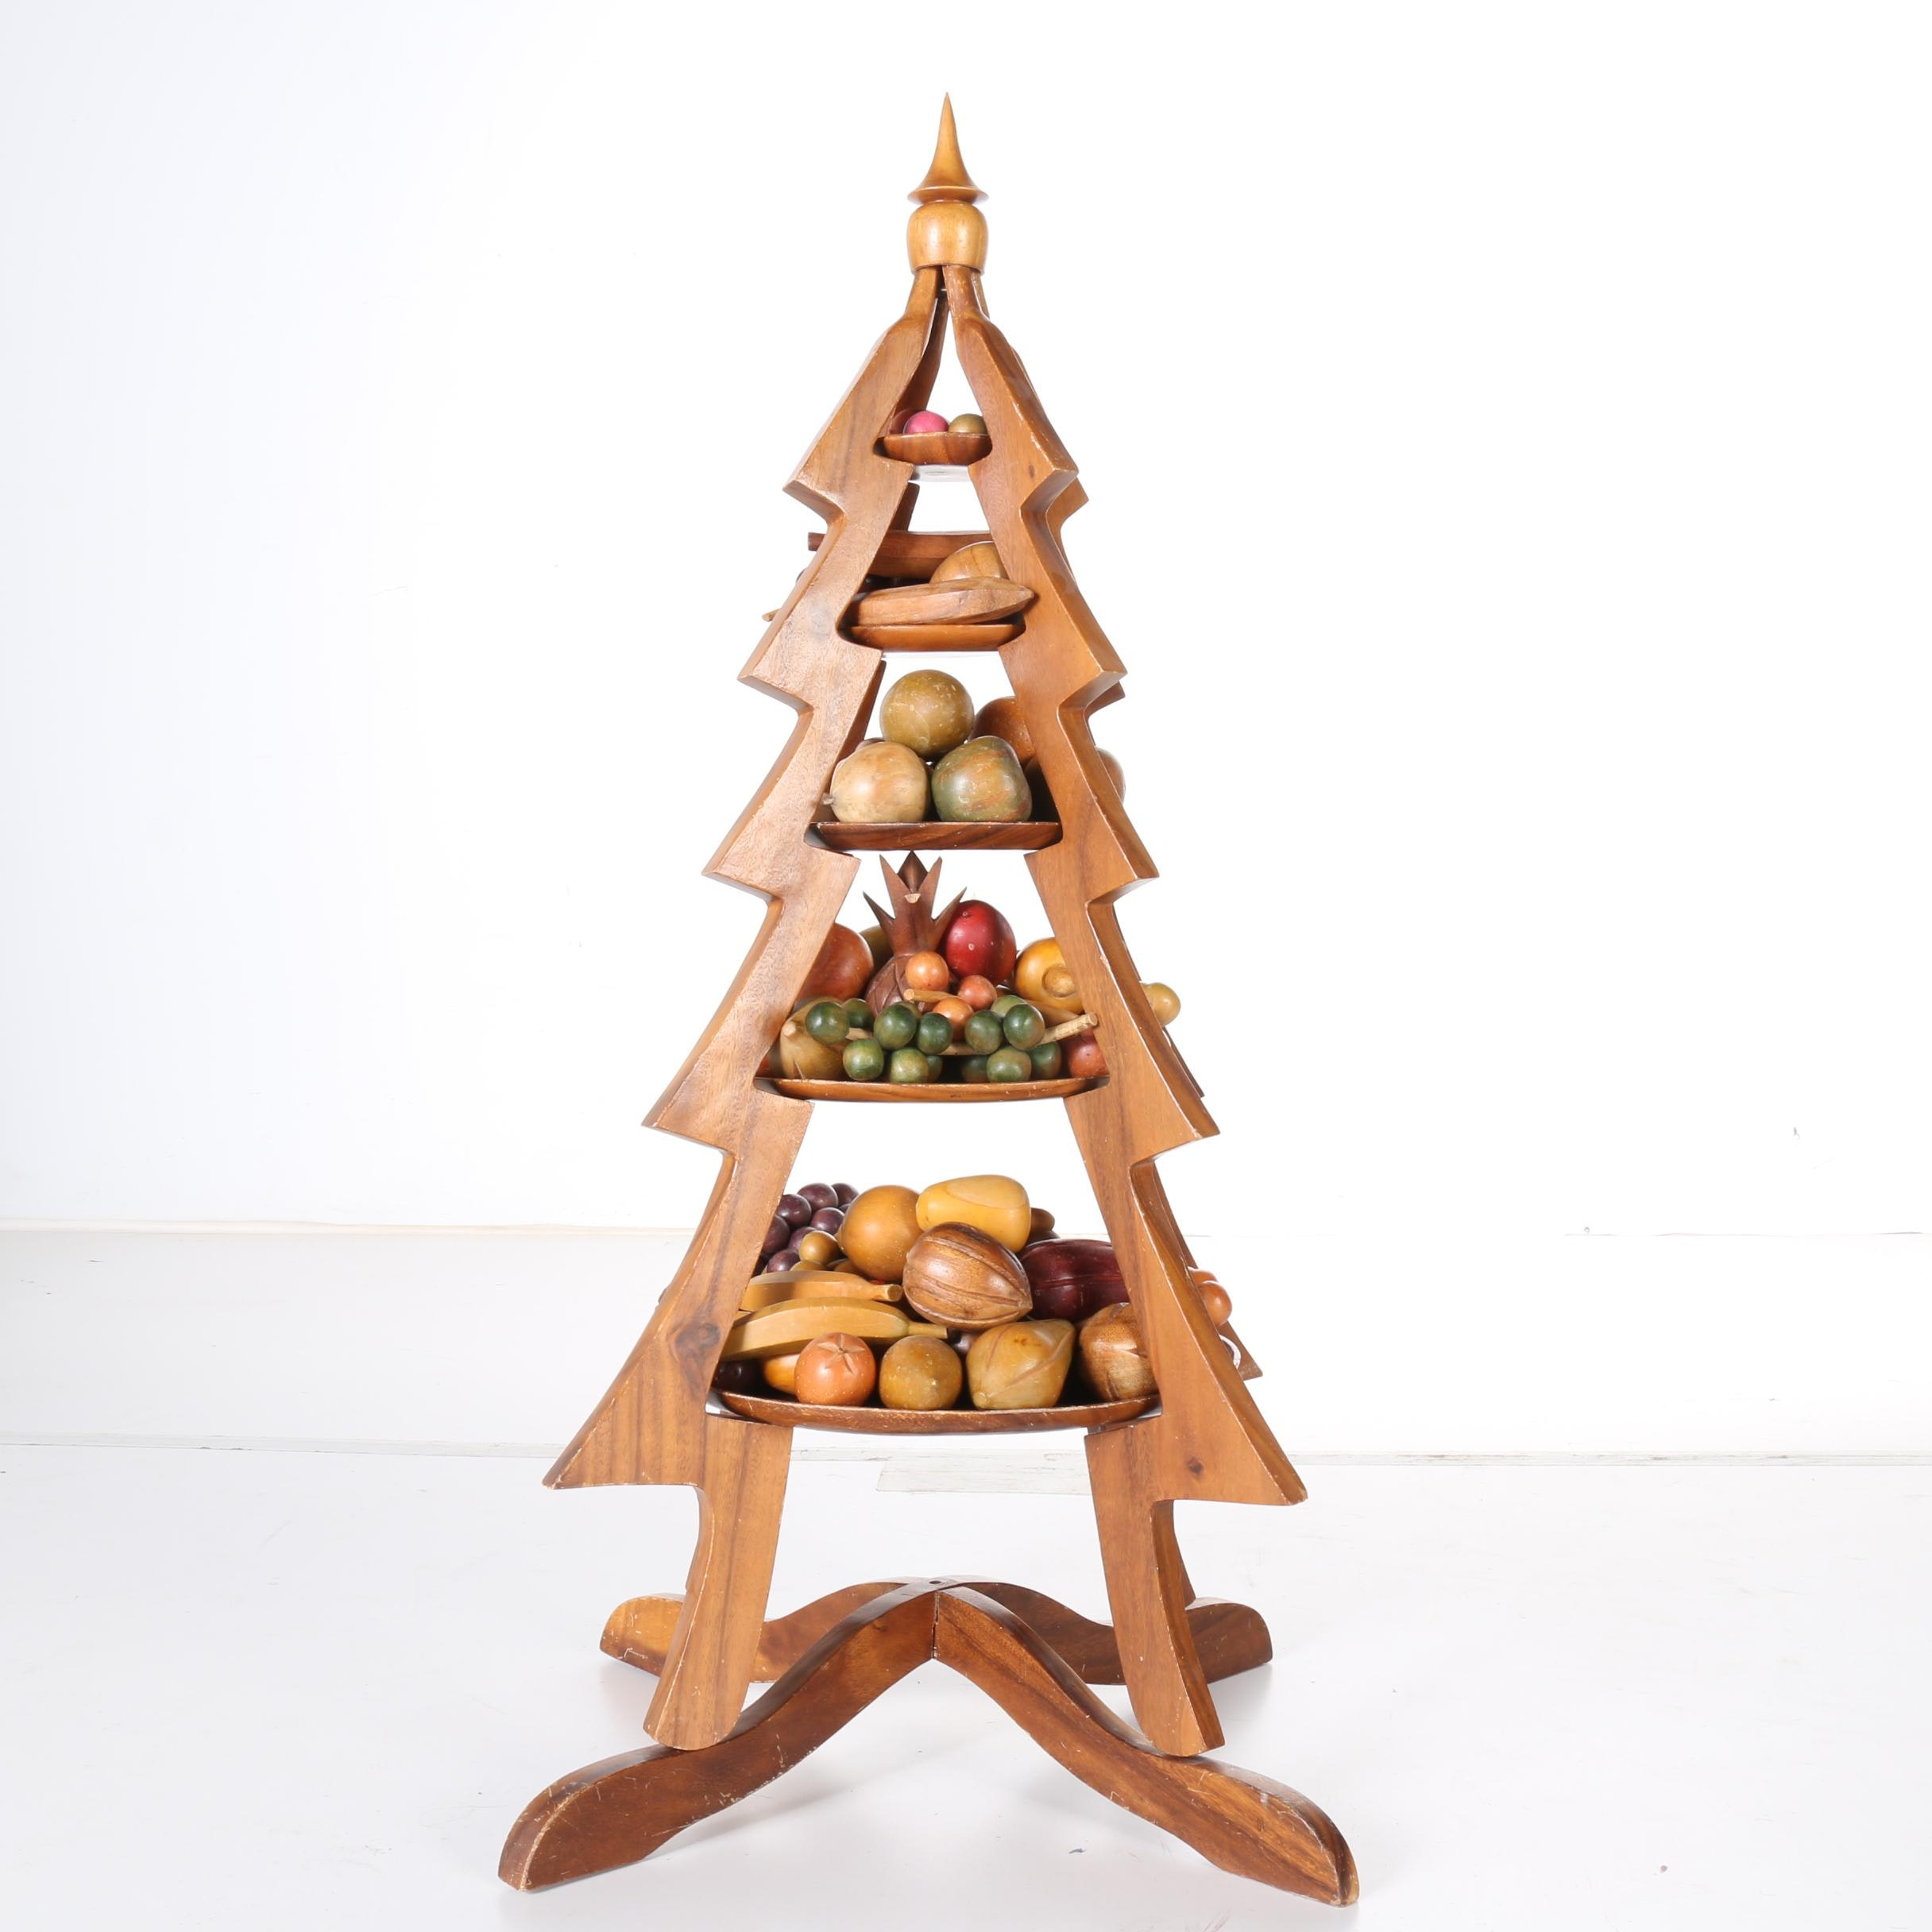 Wooden Fruit and Vegetable Christmas Tree